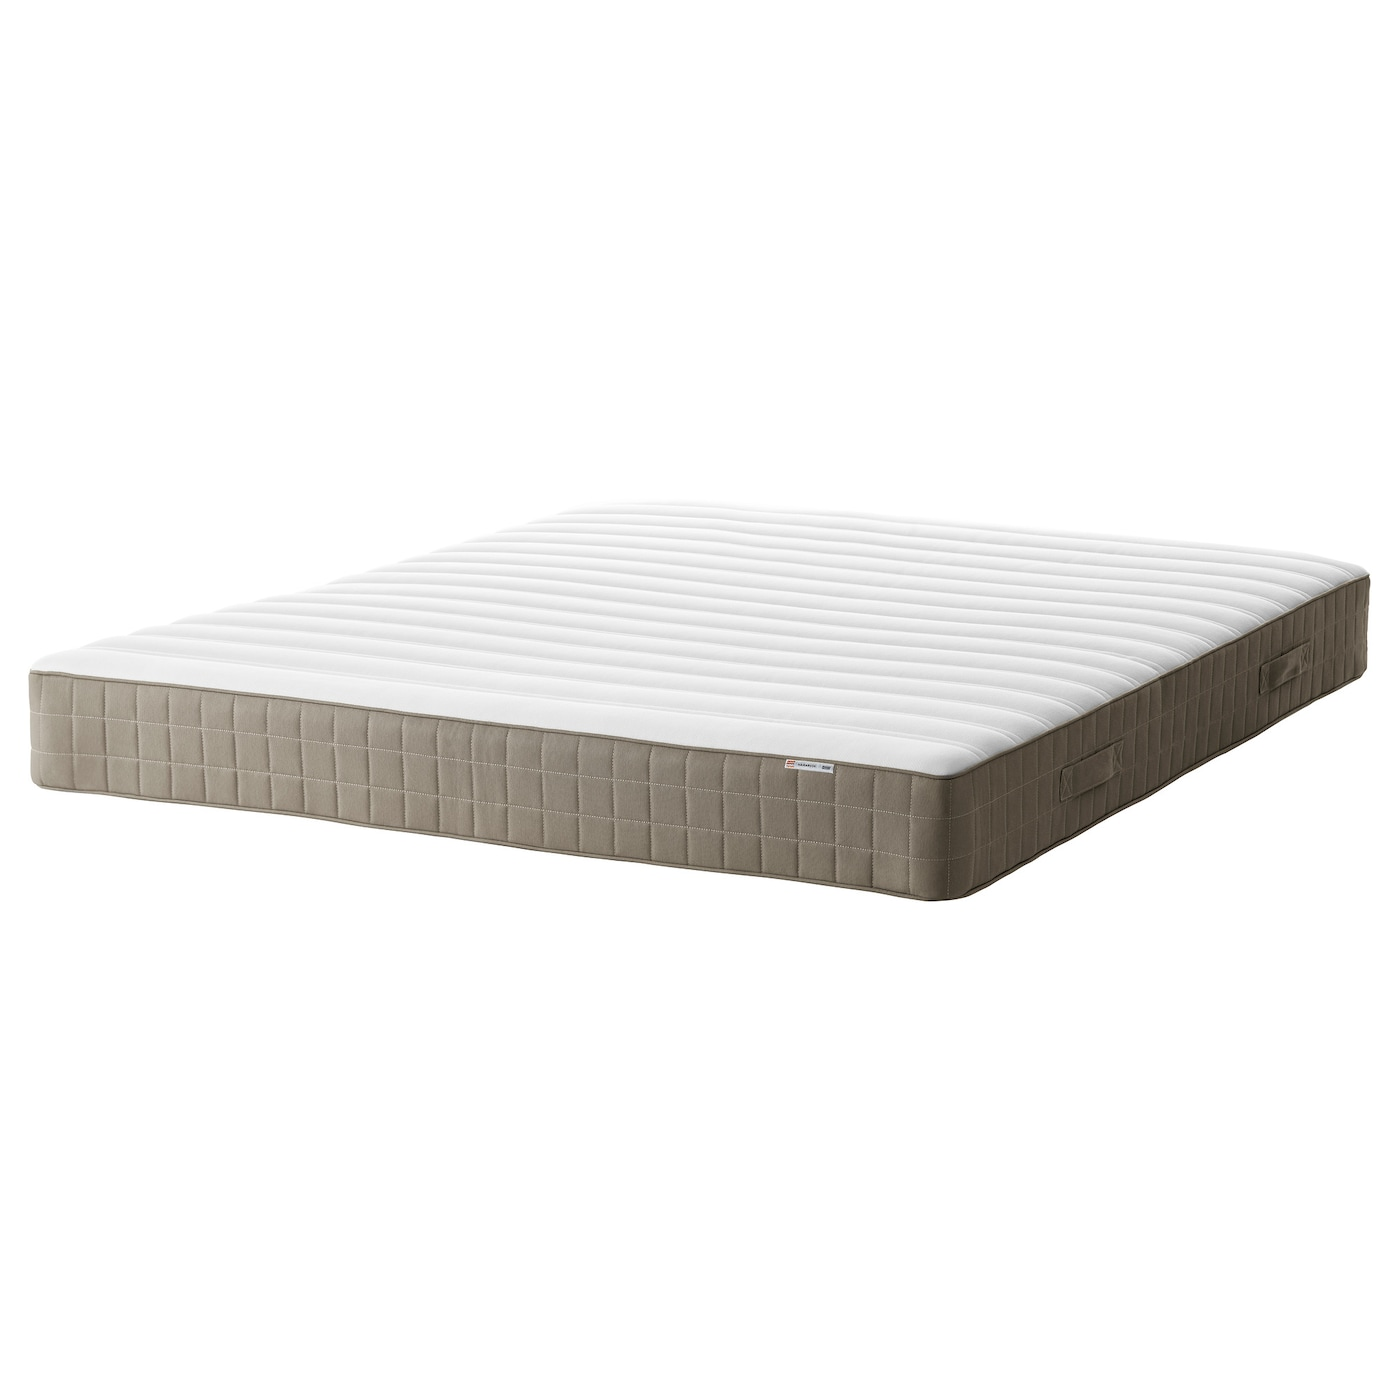 Ikea Mattresses Single Double King Super King